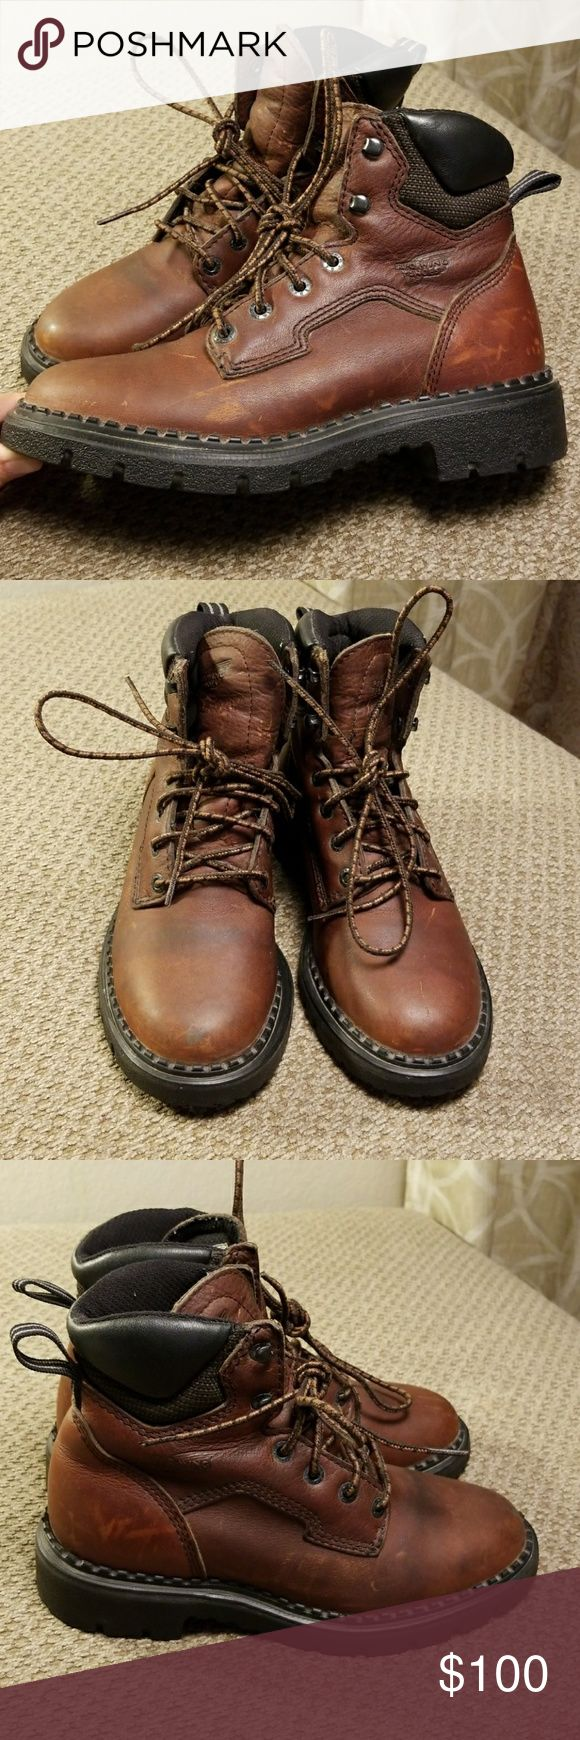 Red Wing womens work boots size 6 Great used condition. Some scuff marks. Womens size 6. Steel toe and oil resistant rubber sole. Stock #1626 Red Wing Shoes Shoes Ankle Boots & Booties